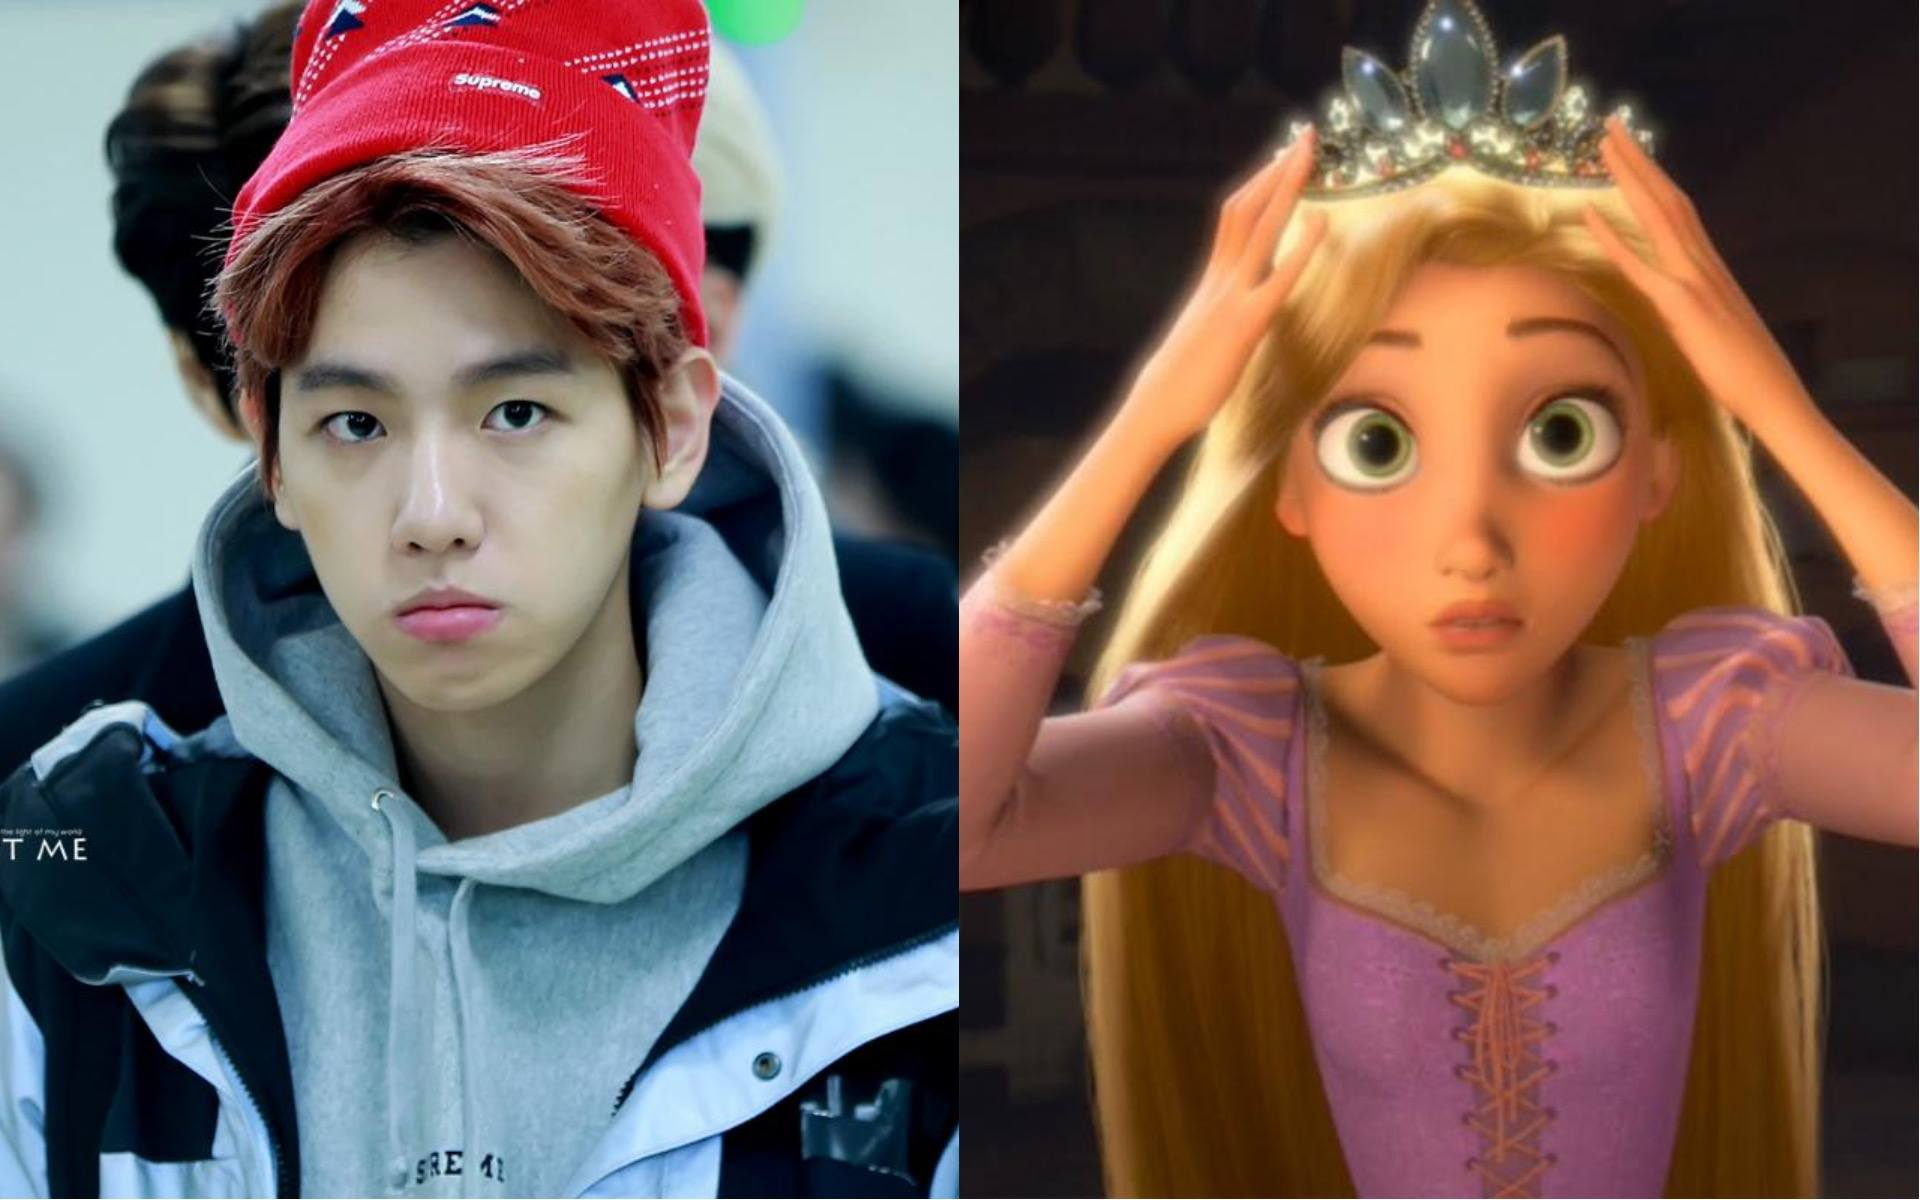 Fans noticed Baekhyun's lips look exactly like this Disney character